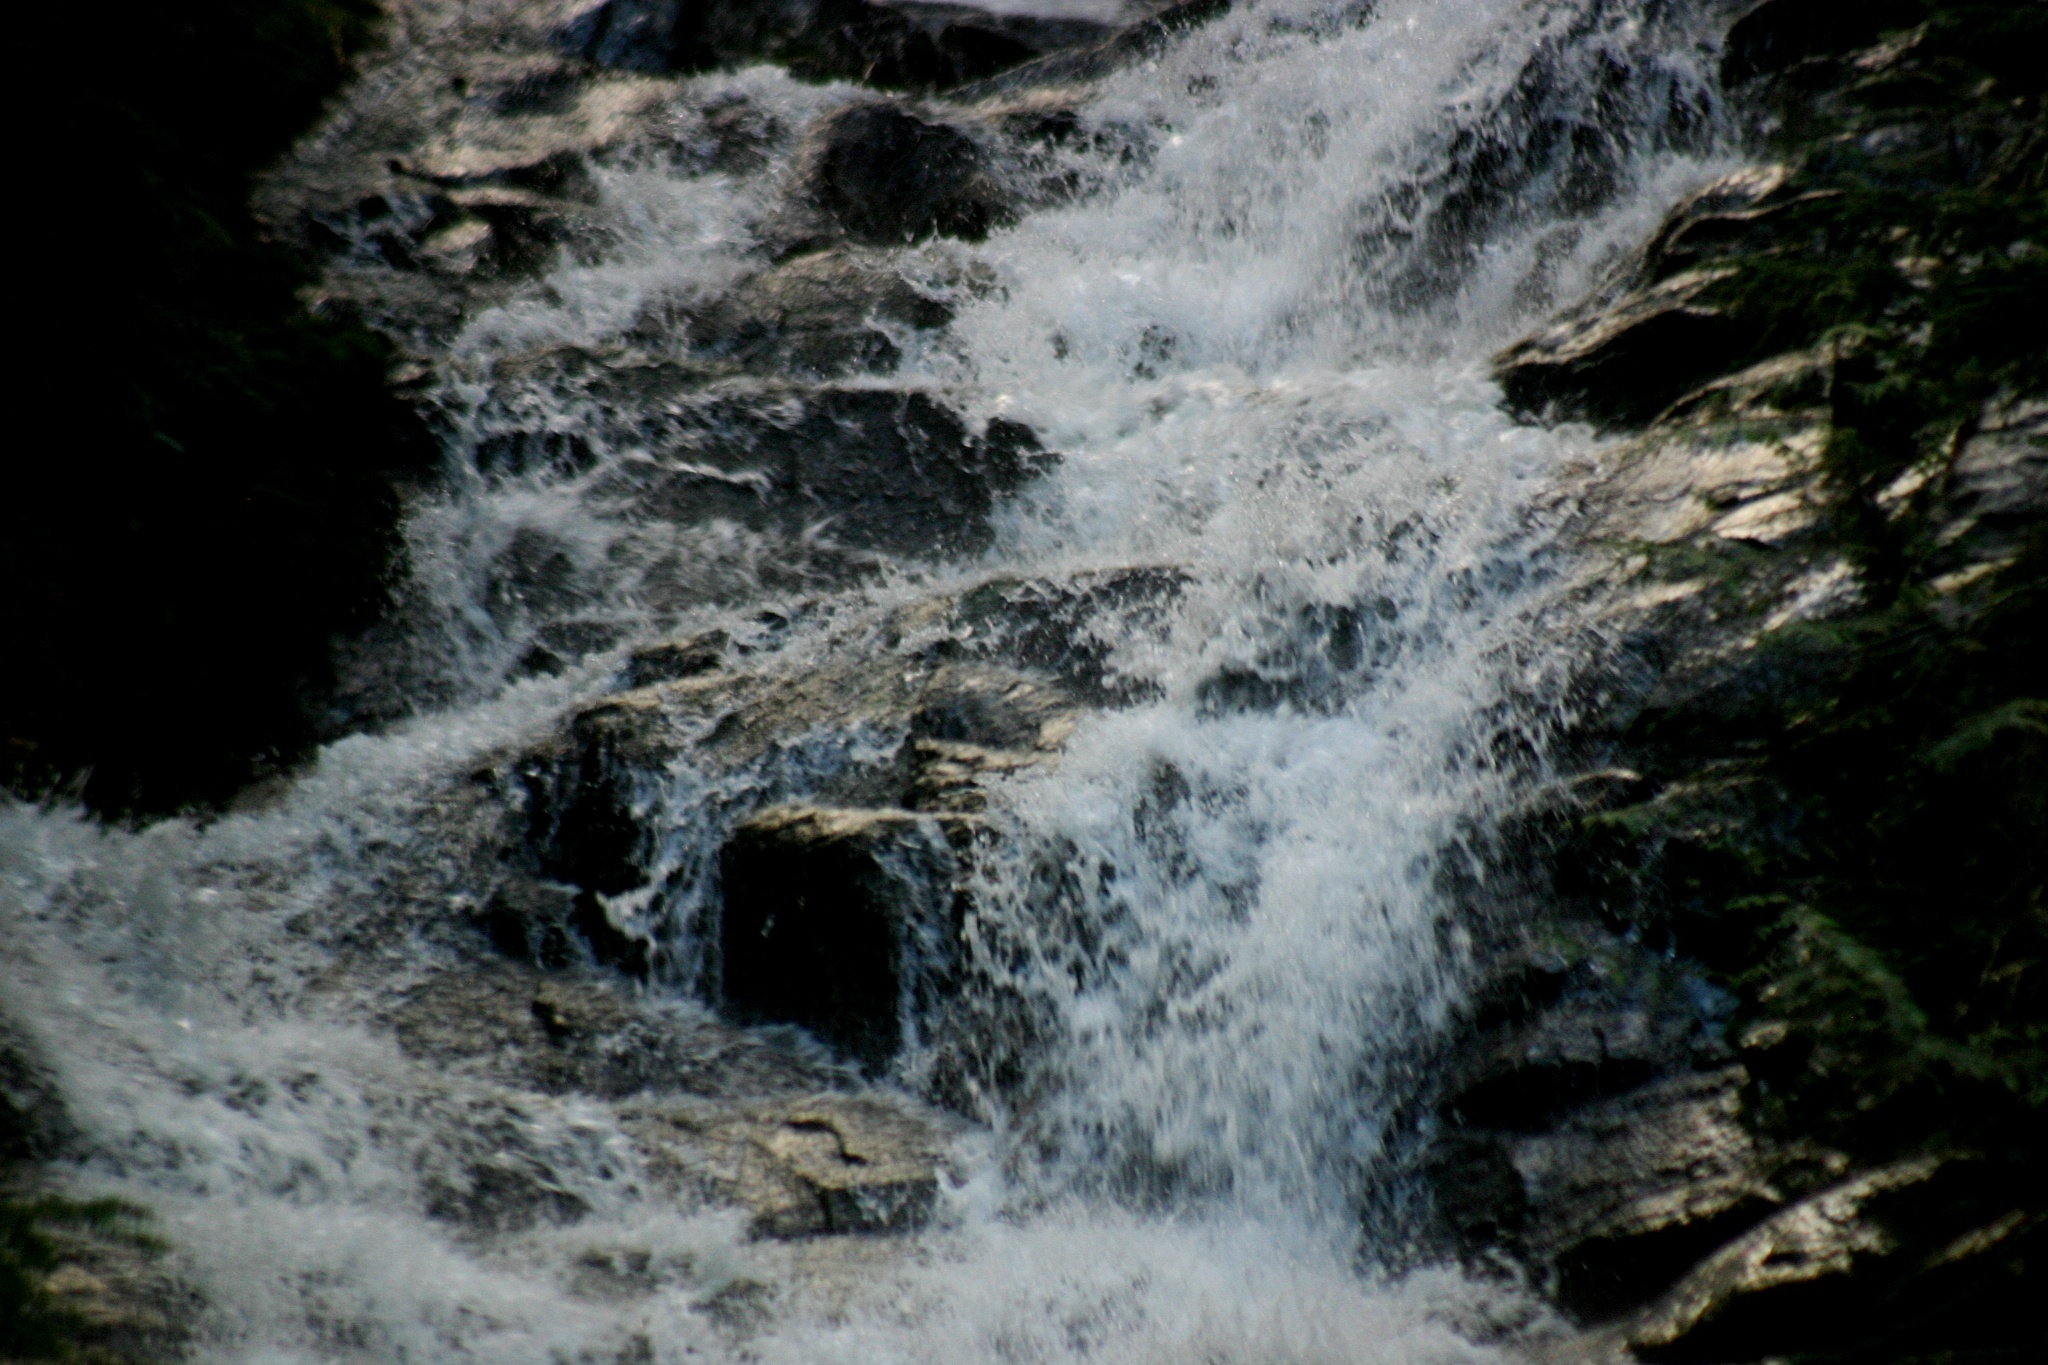 The top of the waterfall. by henrywall63